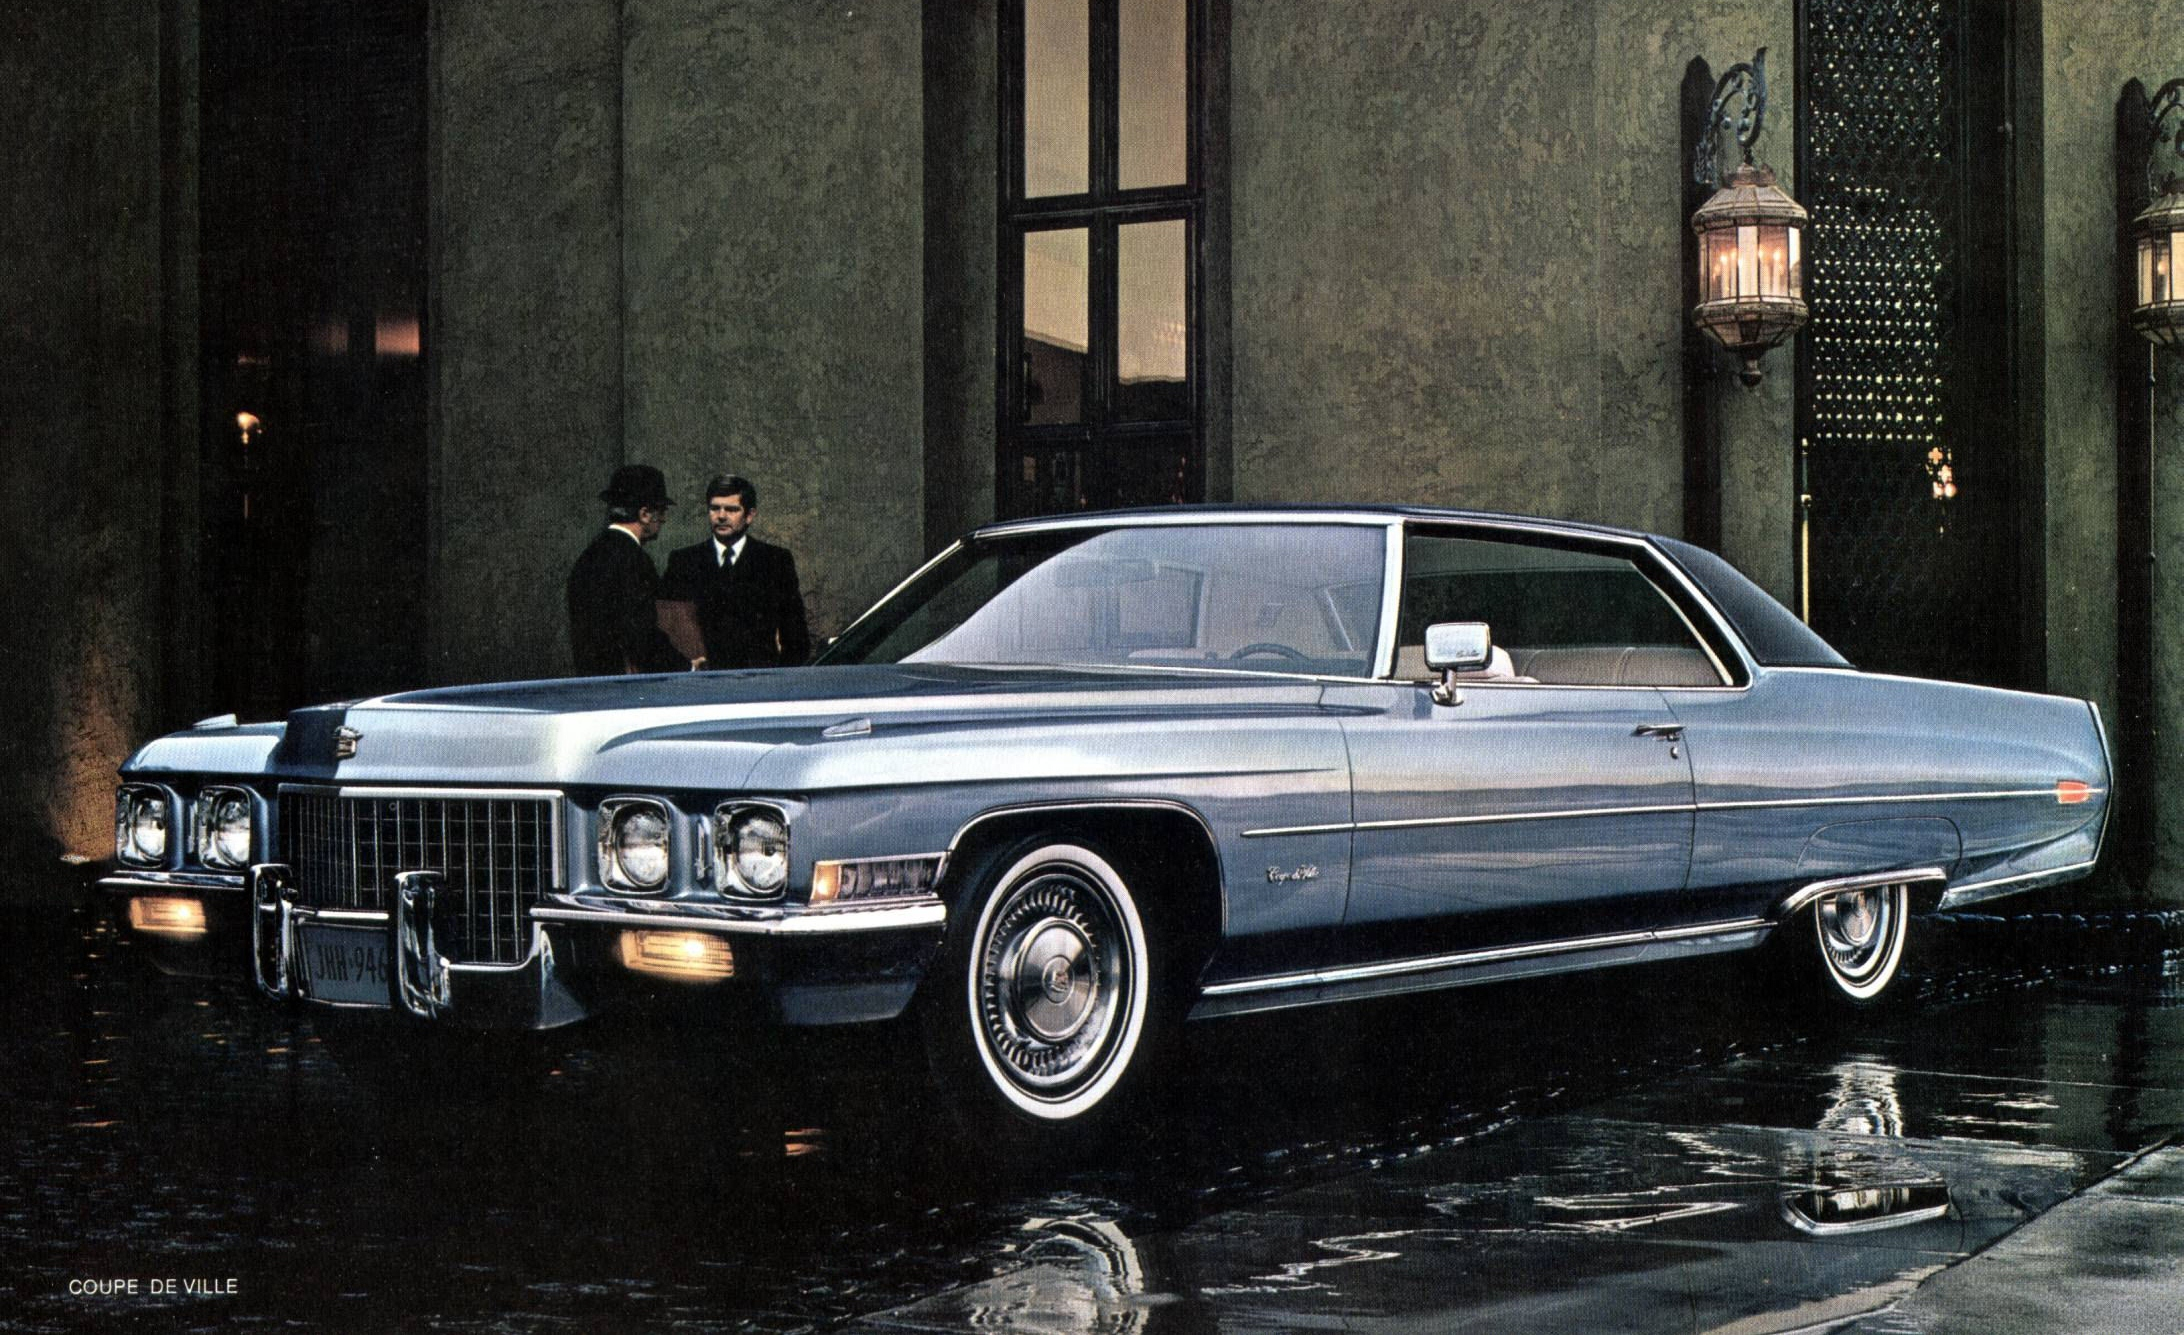 the 1971 Chevrolet Caprice. As you can see in the ad above, Chevrolet